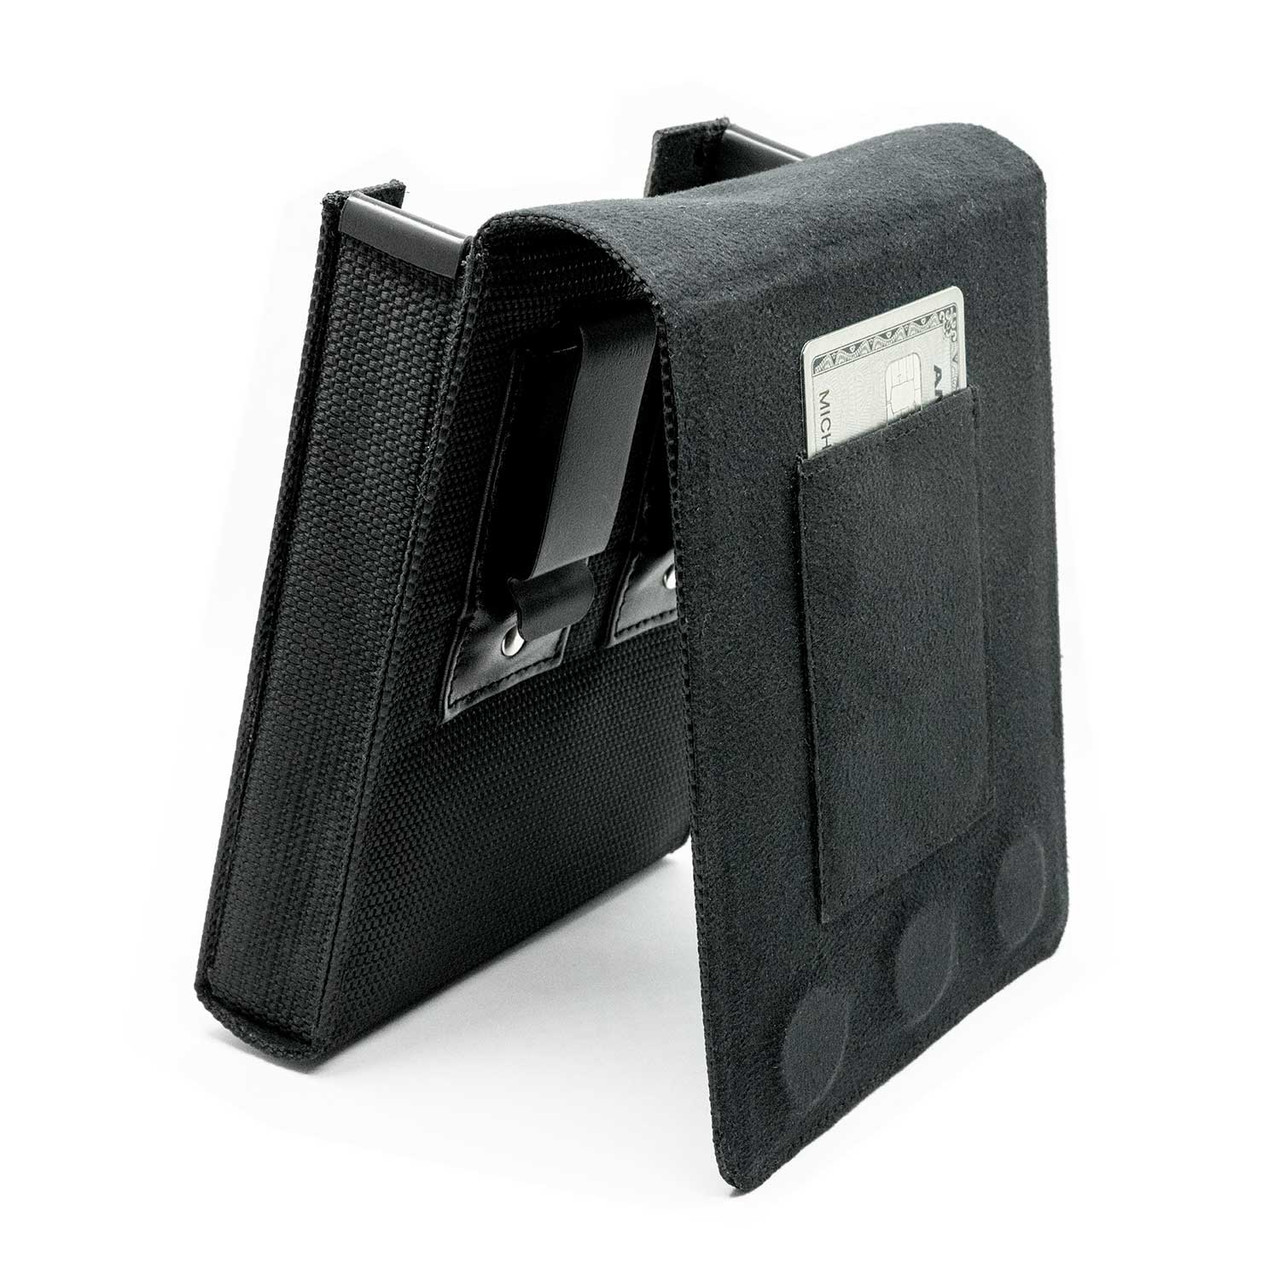 Ruger Security 9 Compact Navy Tactical Patch Holster